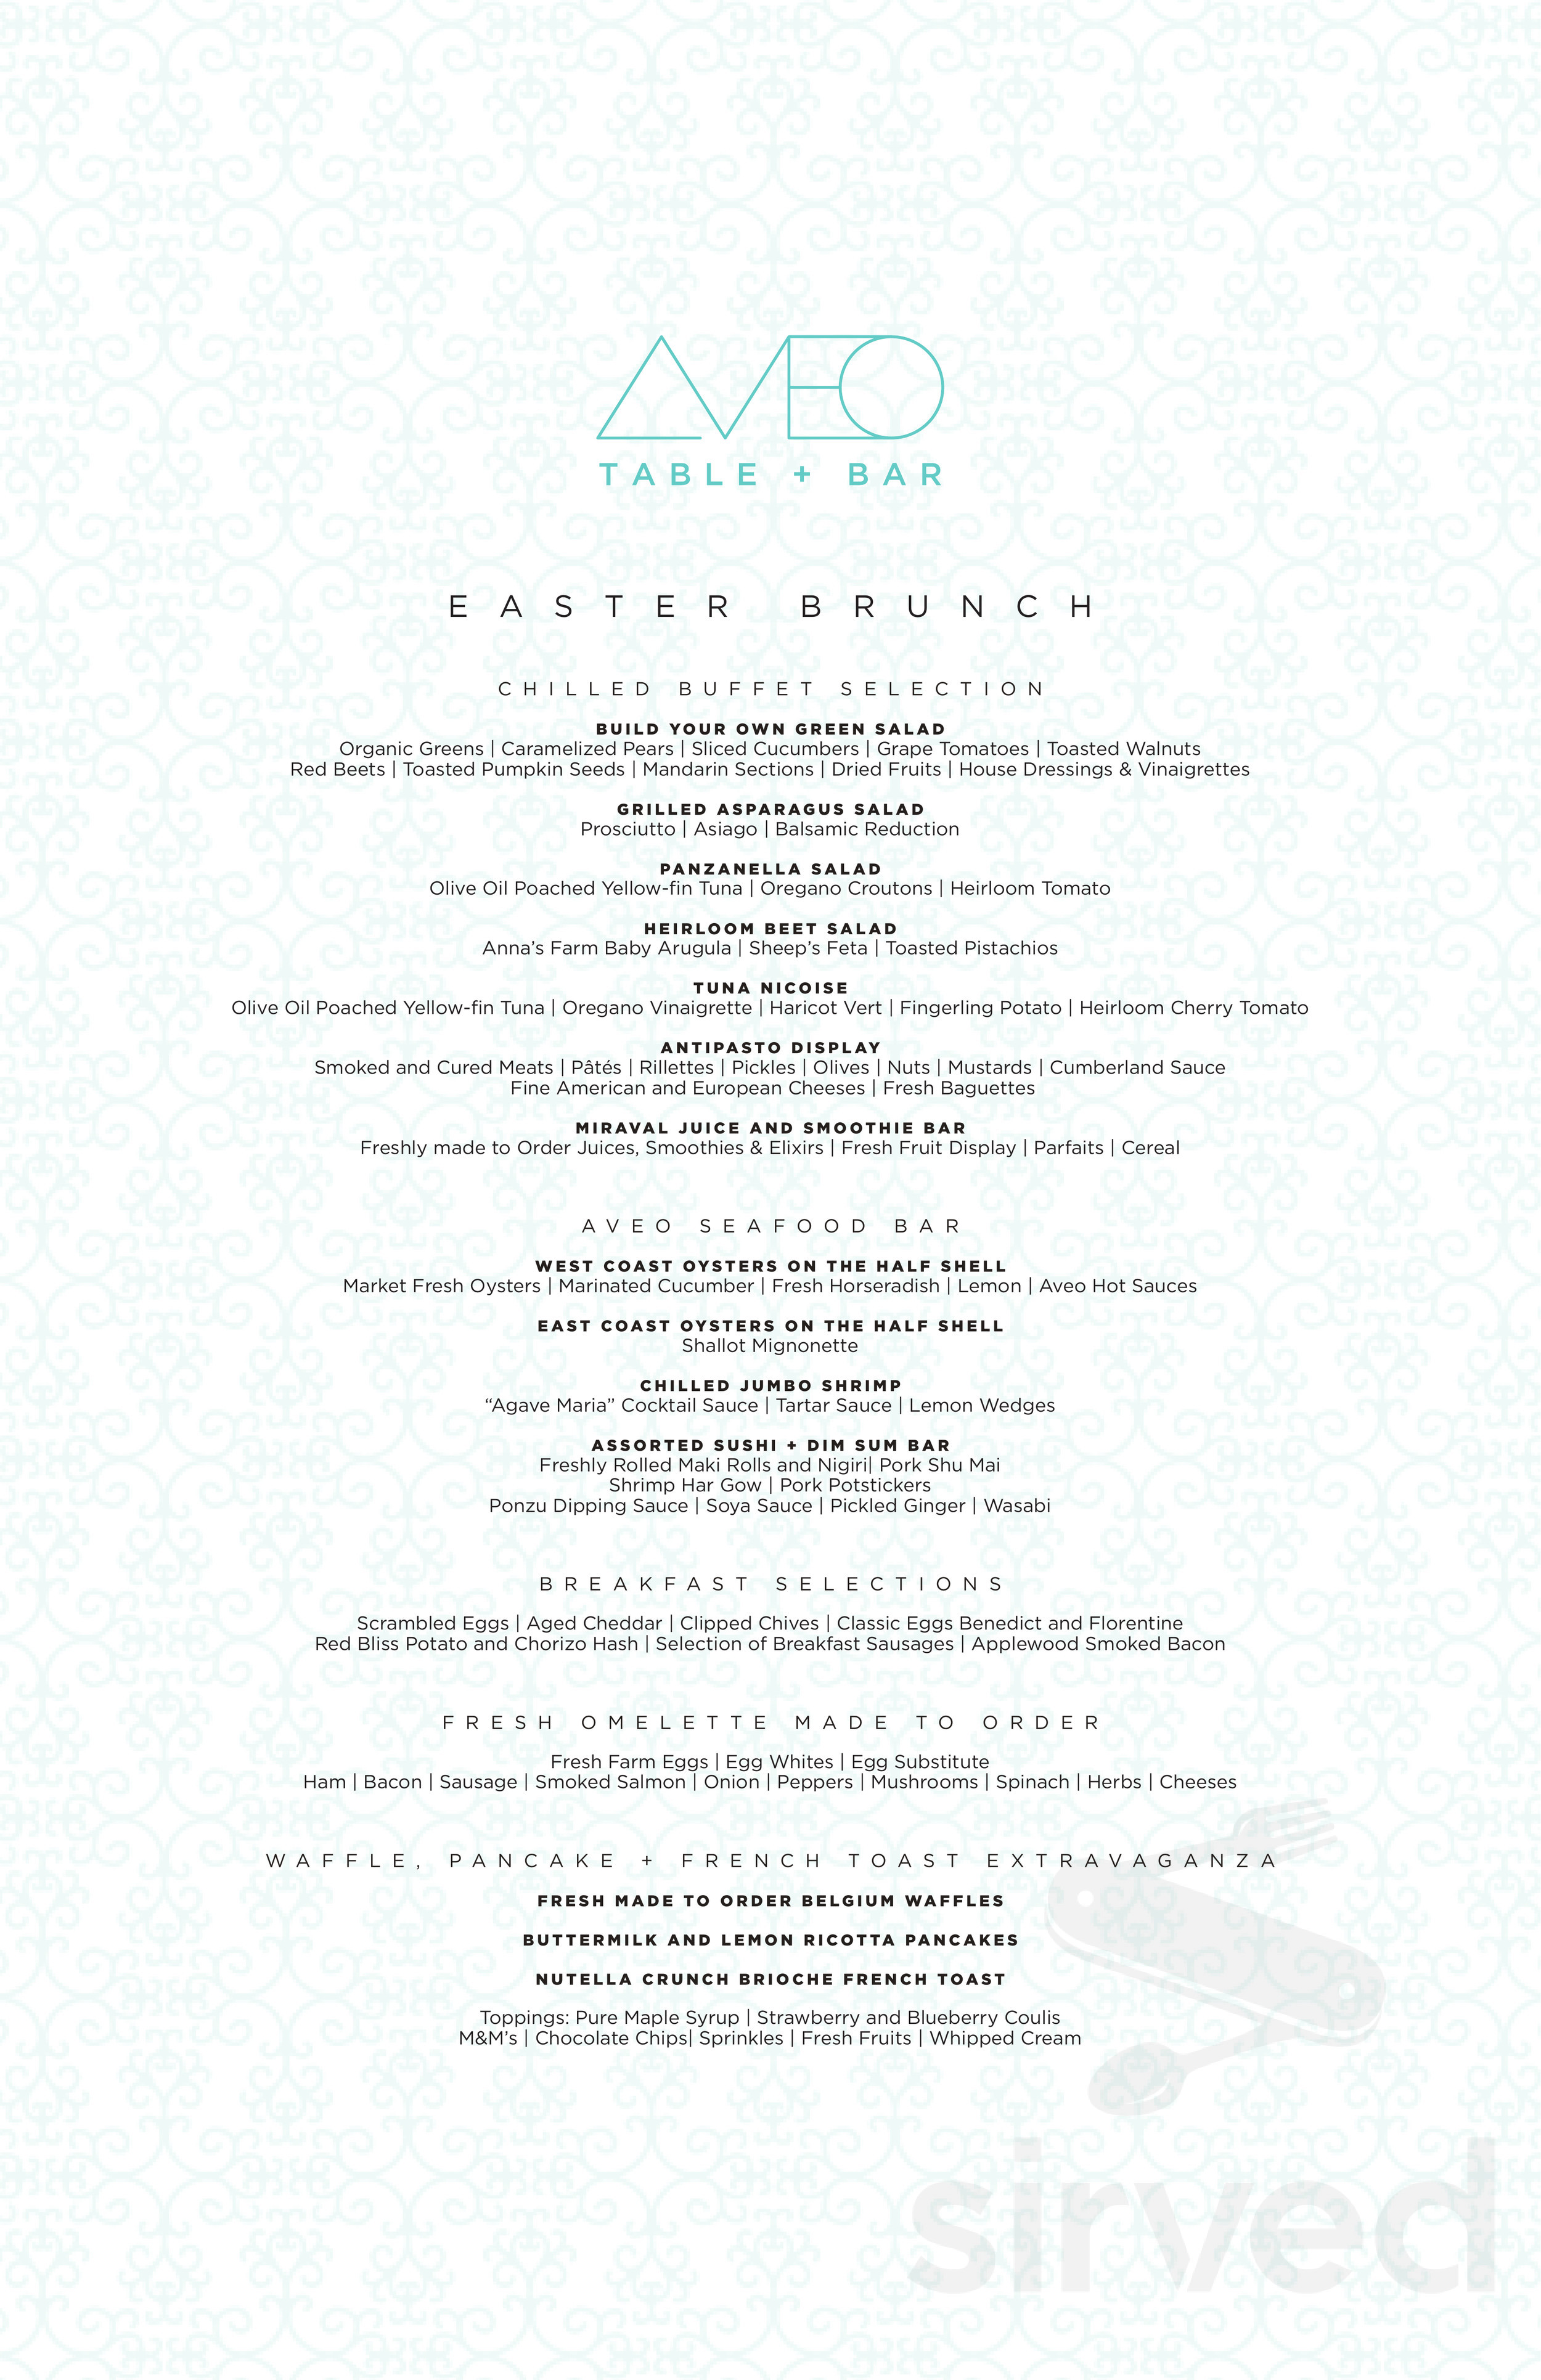 Menu for AVEO Table + Bar in Dana Point, California, USA